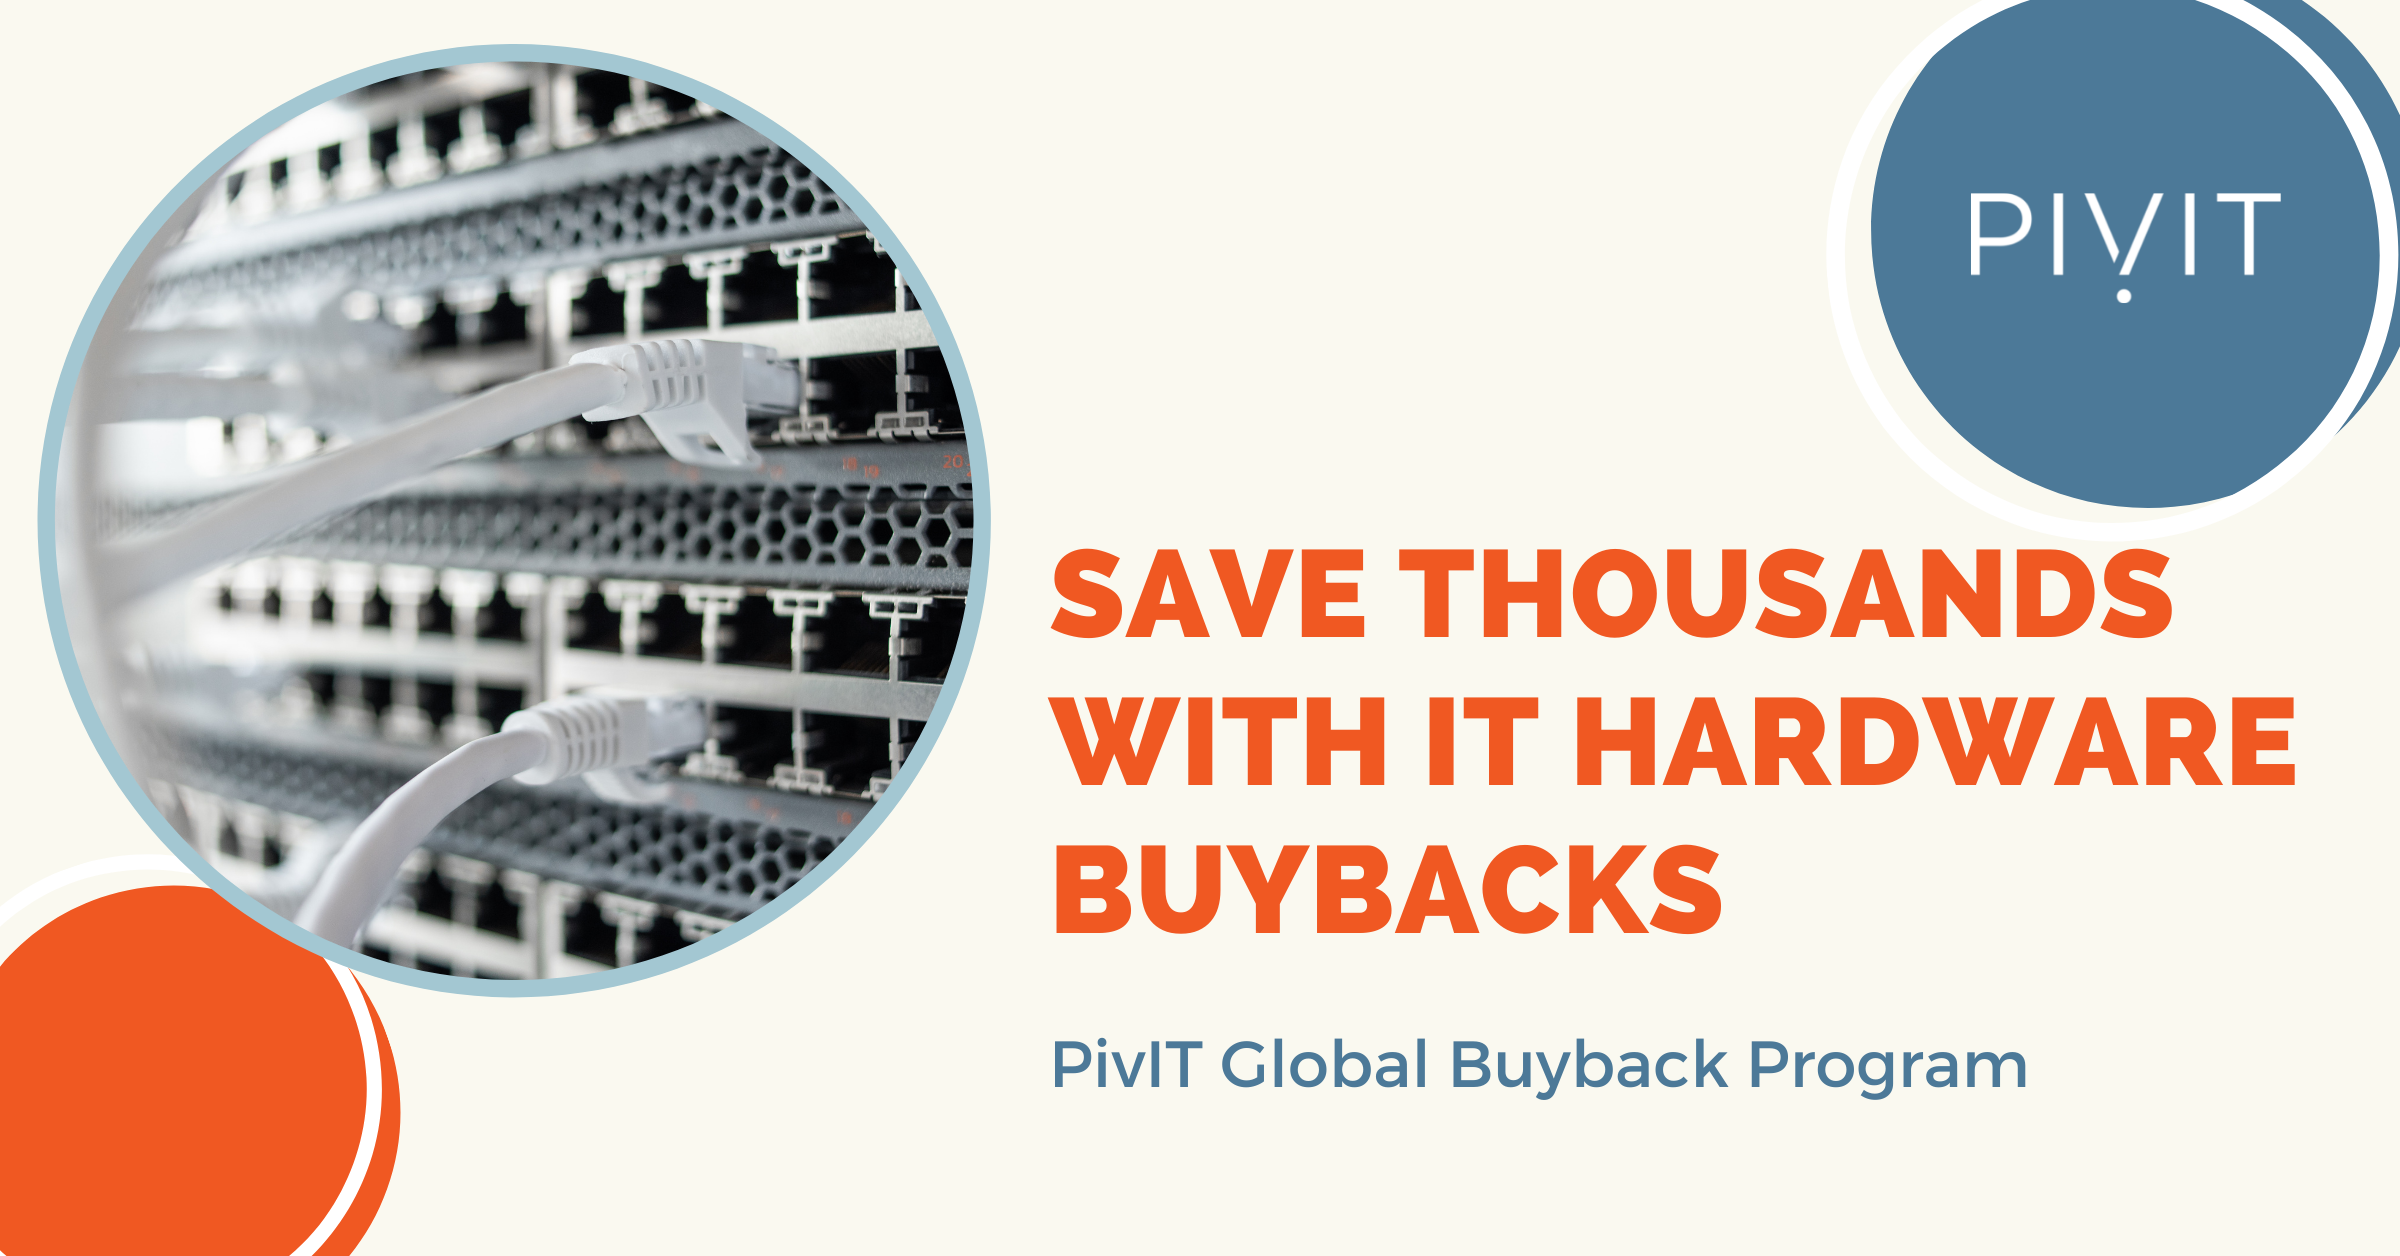 save thousands with it hardware buybacks from pivit global